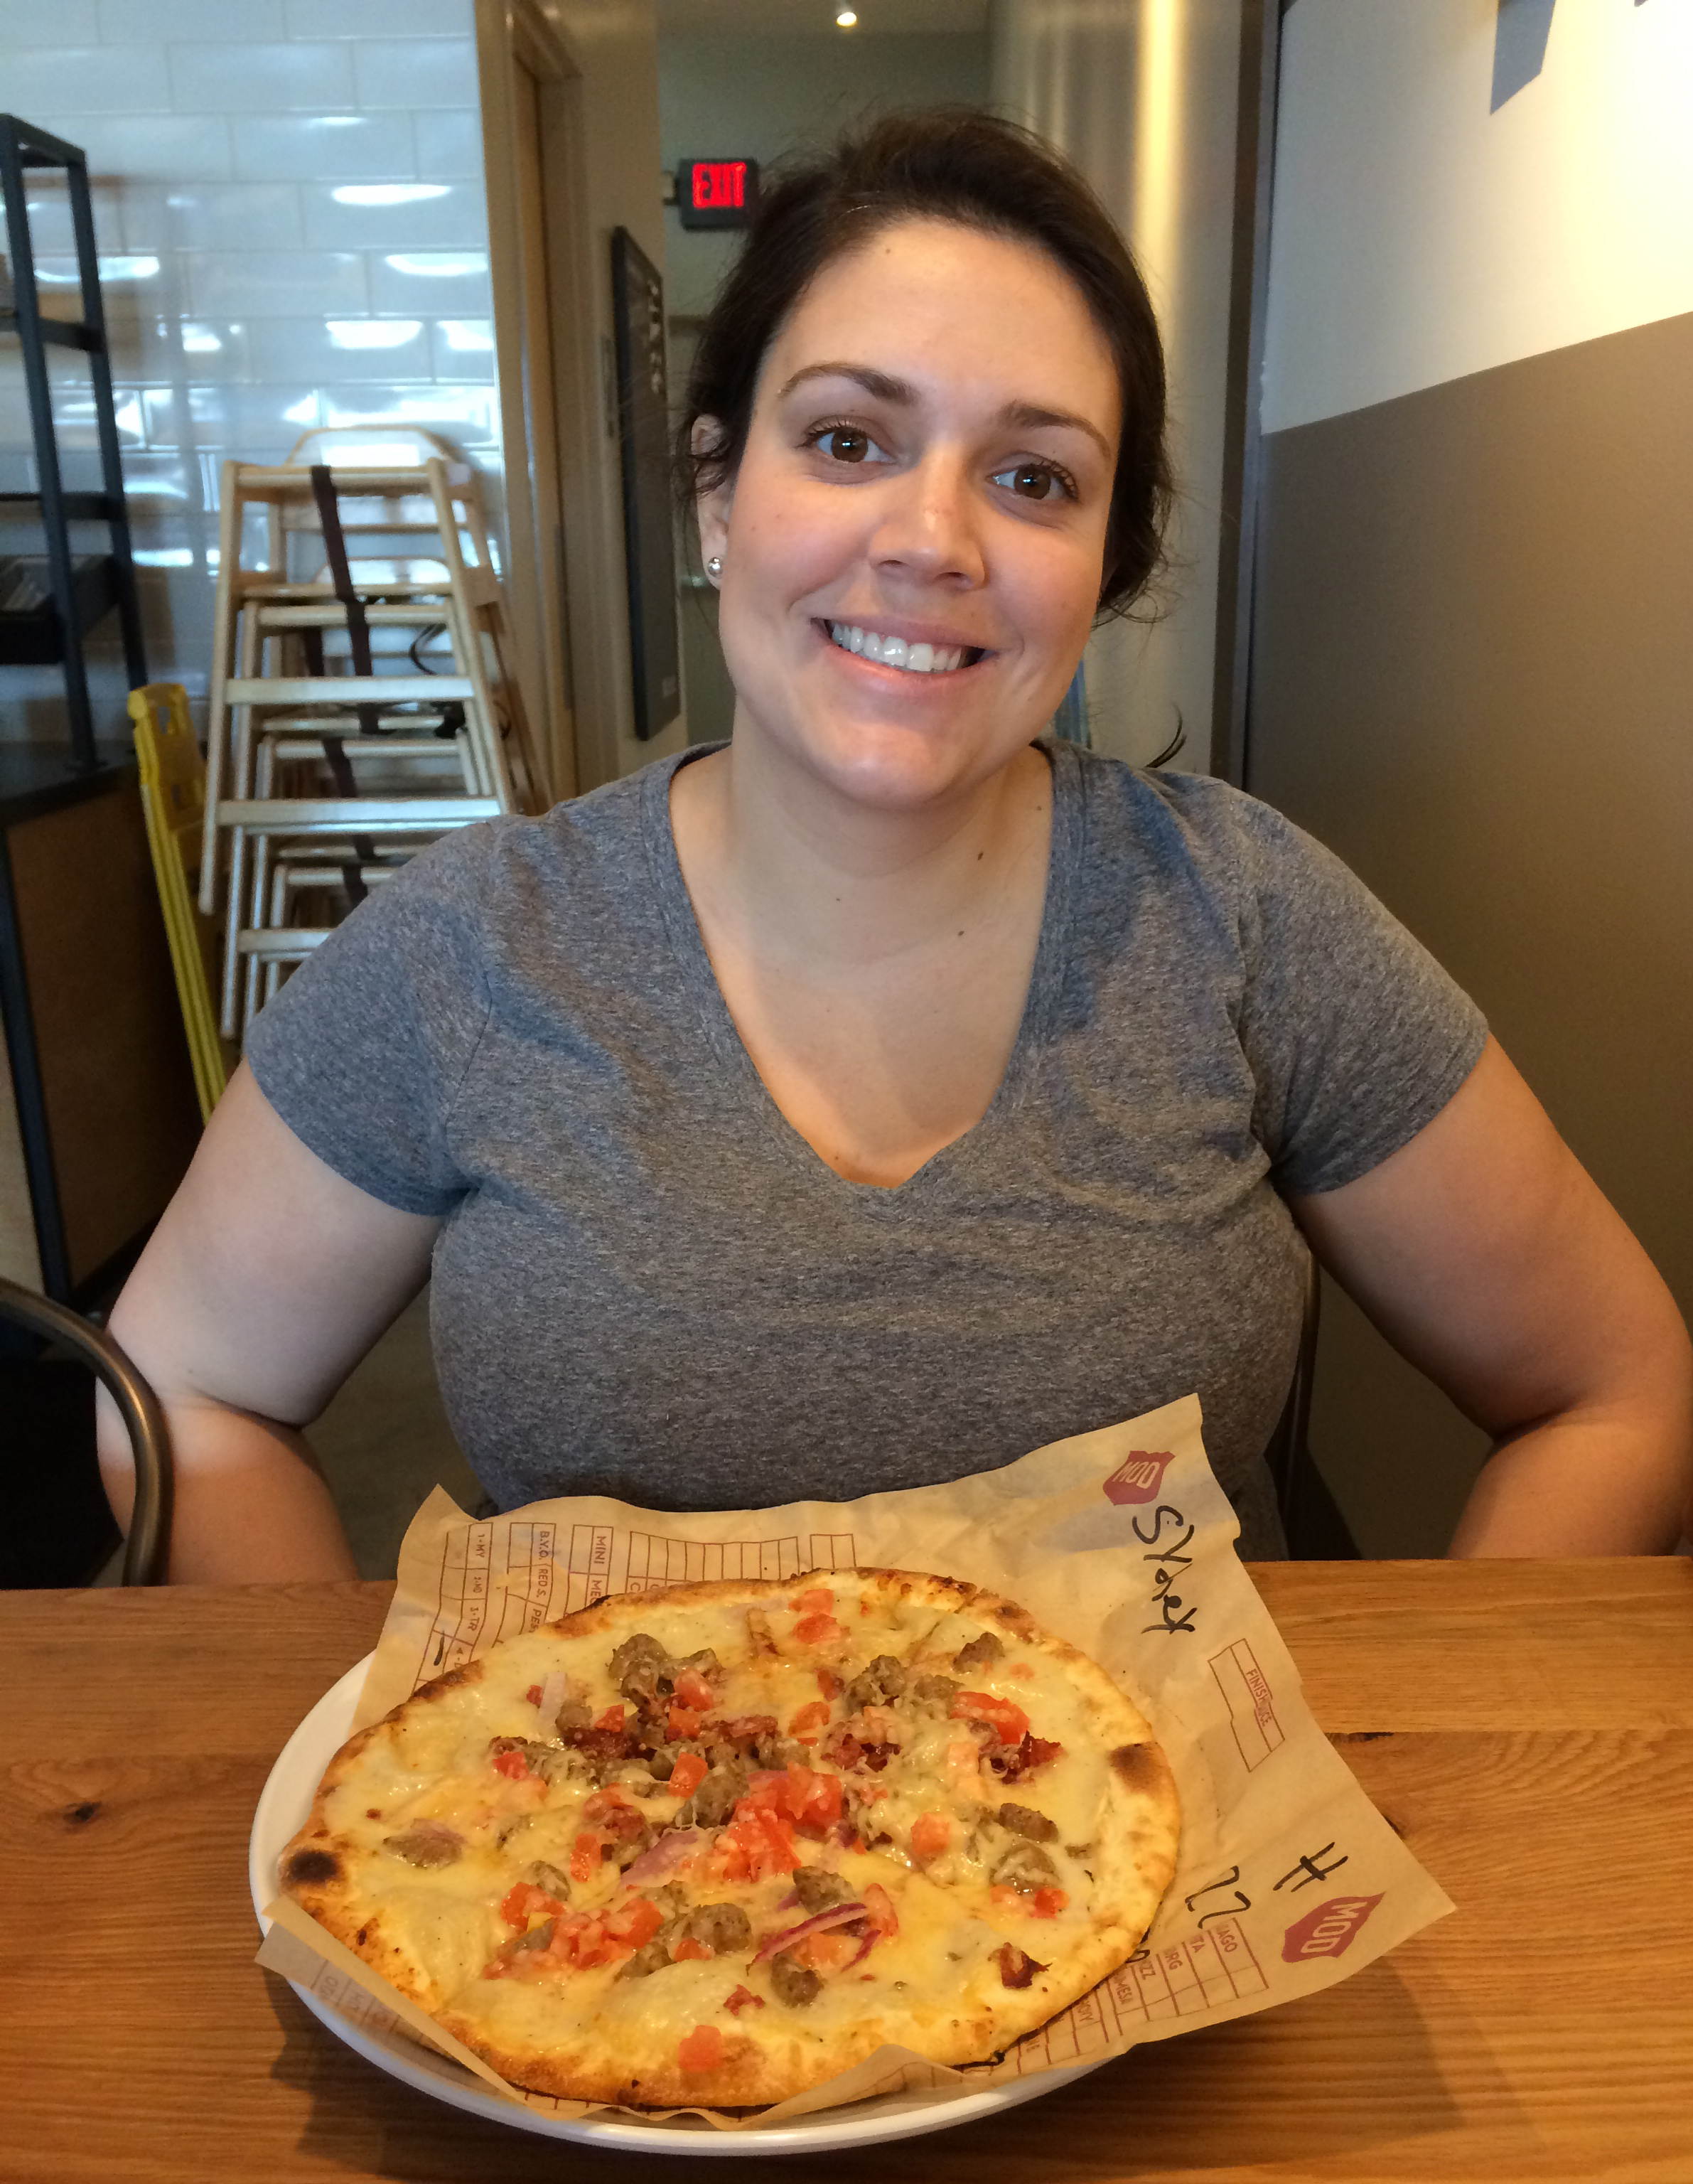 This is Sidney with her pizza. She got the Dominic, a MOD Pizza classic.